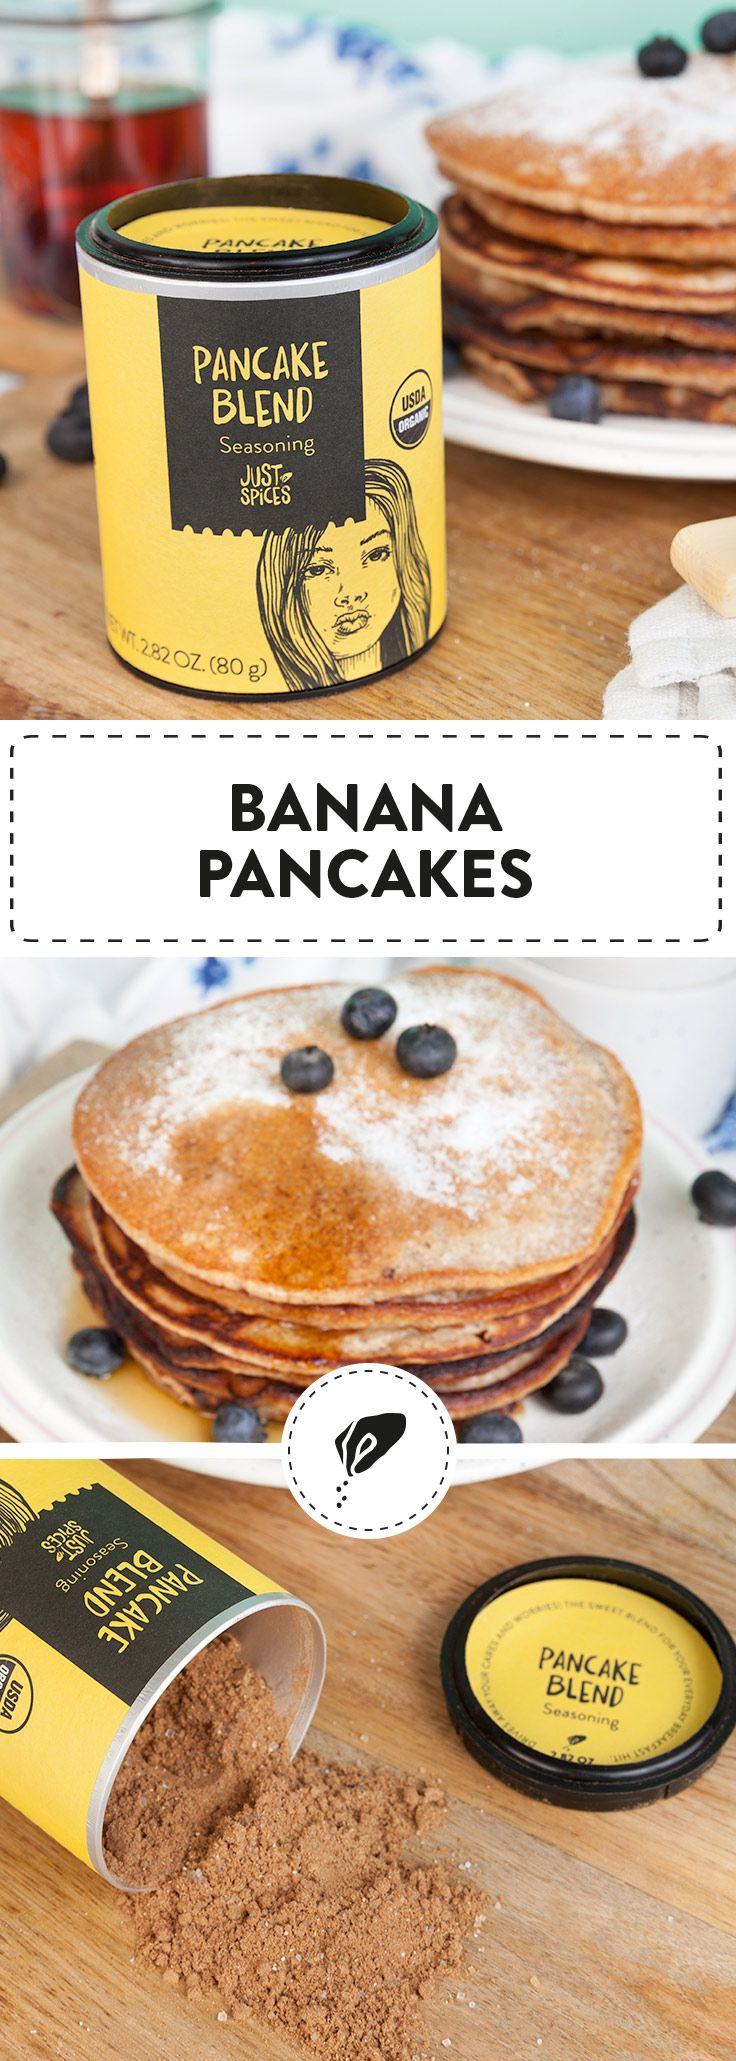 We're going banana's for these pancakes 🍌🥞  How do you make a banana pancake? We'll show you how to make healthy, easy, and most importantly delicious banana pancakes in the blink of an eye. 👀  #bananapancakes #pancakesforbreakfast #pancakerecipe